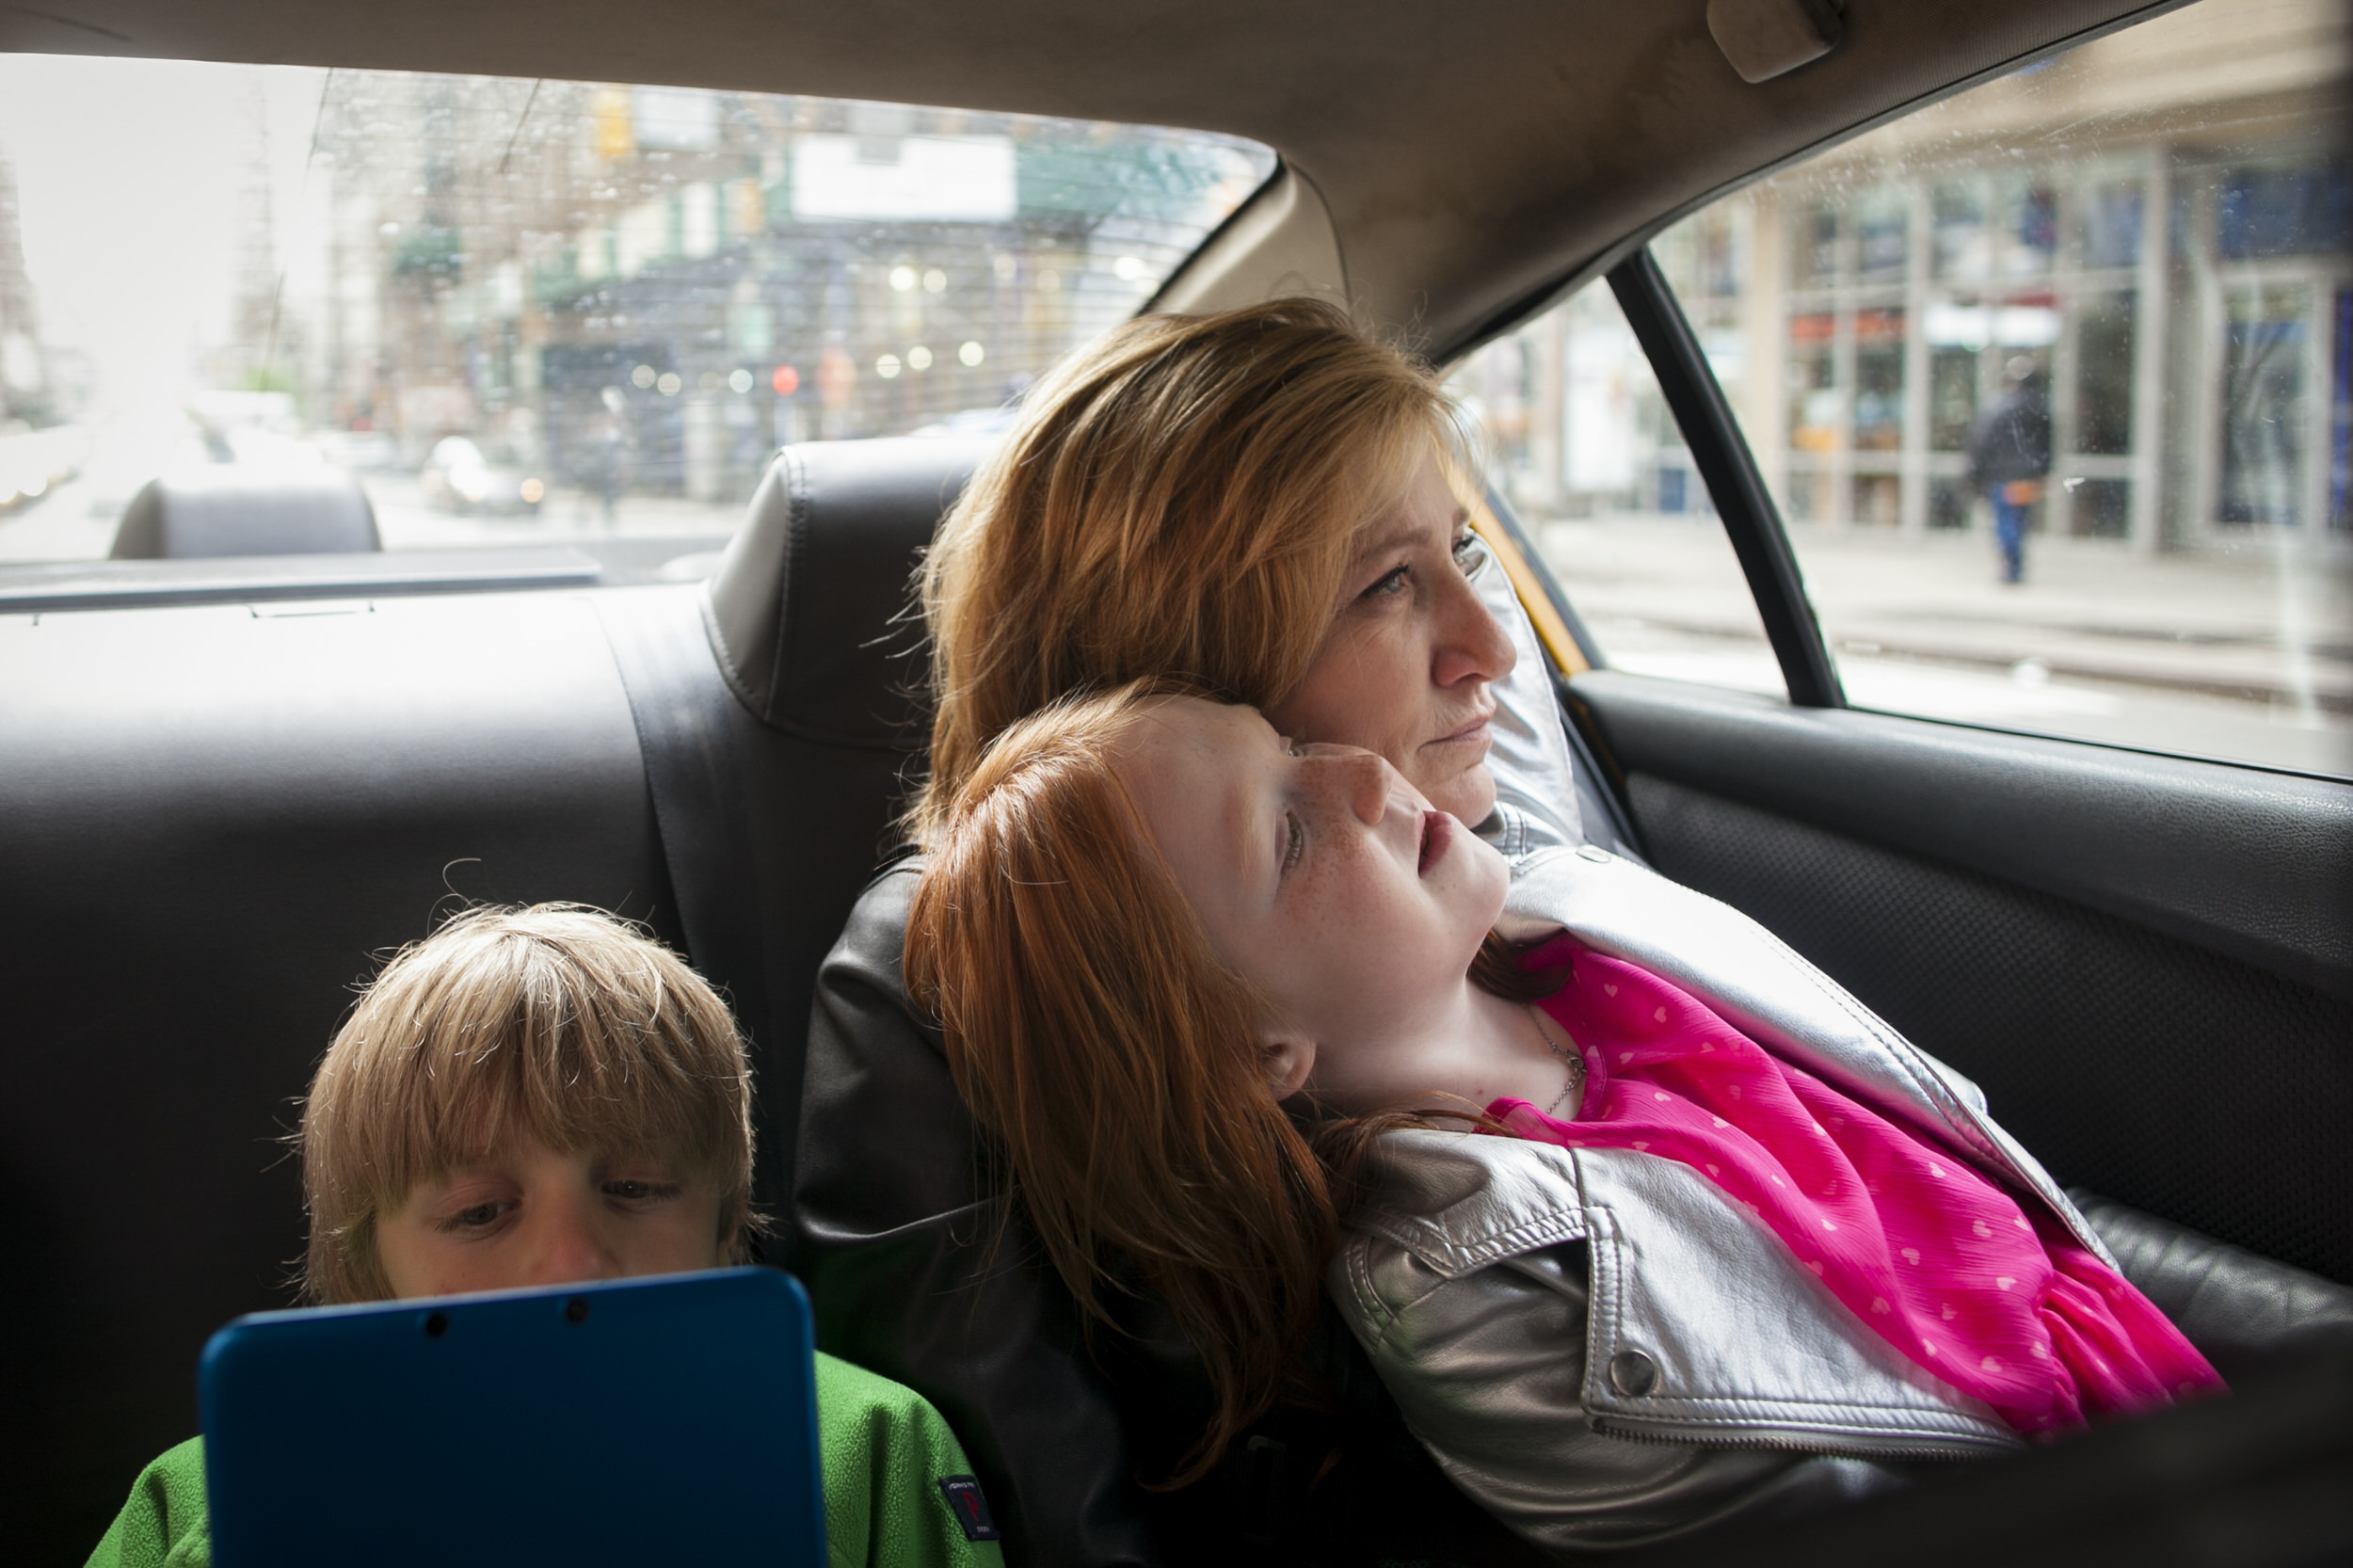 Actor Edie Falco in a taxi with her children Anderson and Macy.